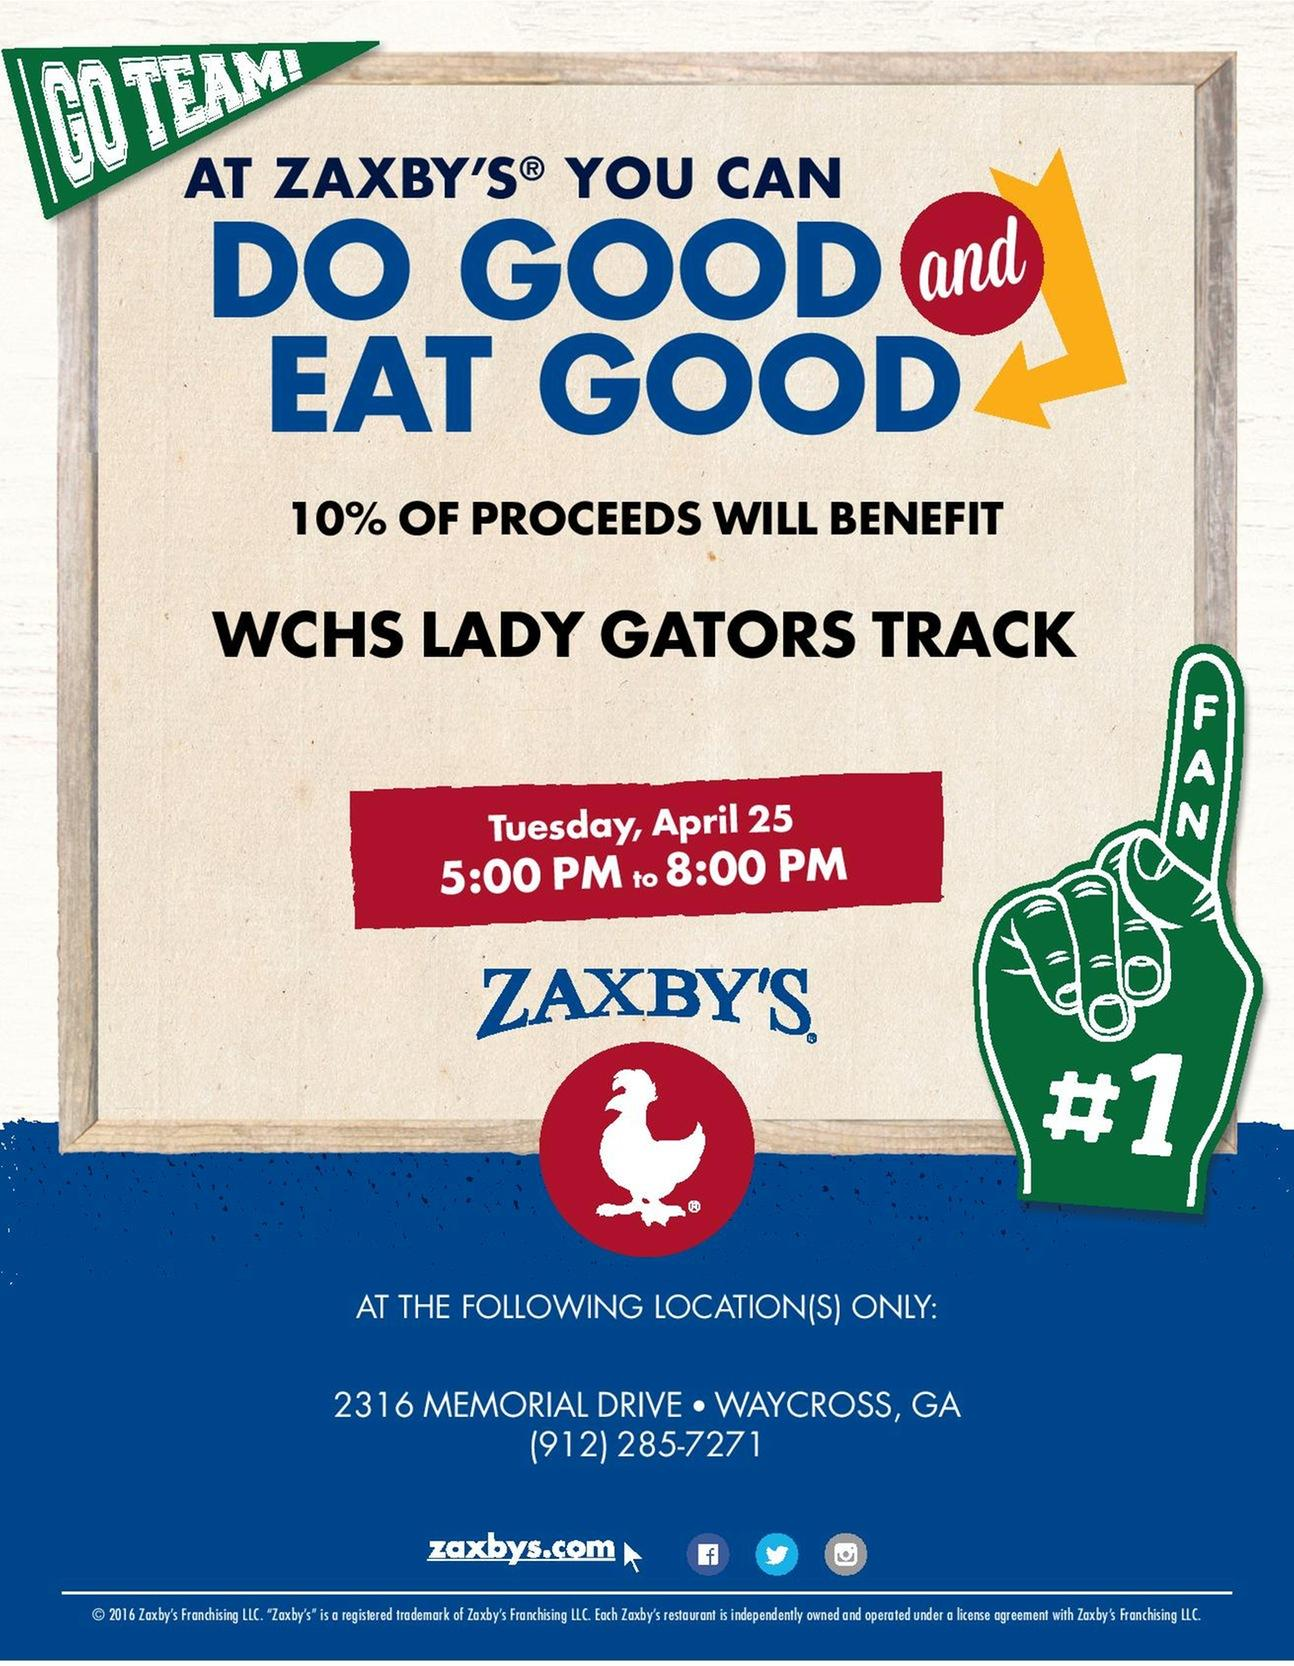 Join the Ware County Girls Track Team at Zaxby's Tuesday